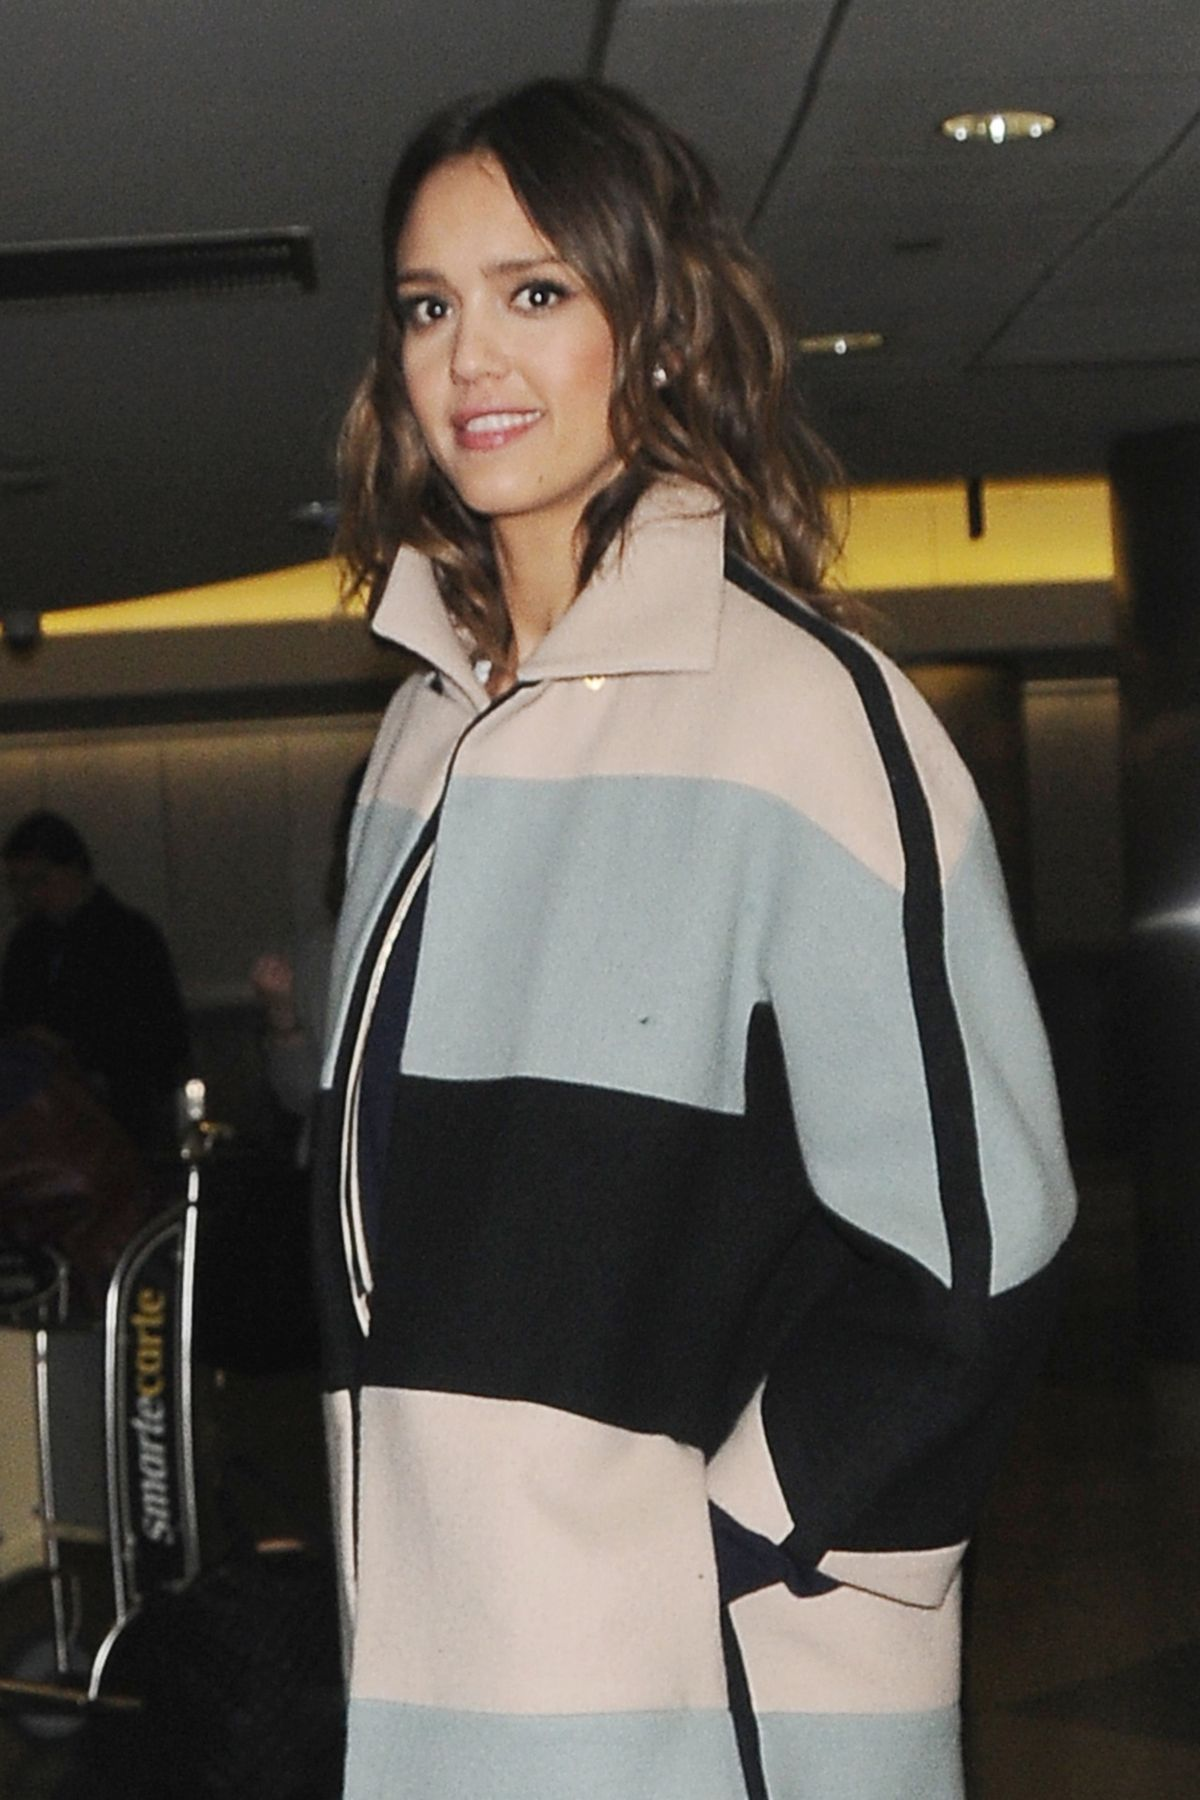 JESSICA ALBA at LAX Airport in Los Angeles 0503